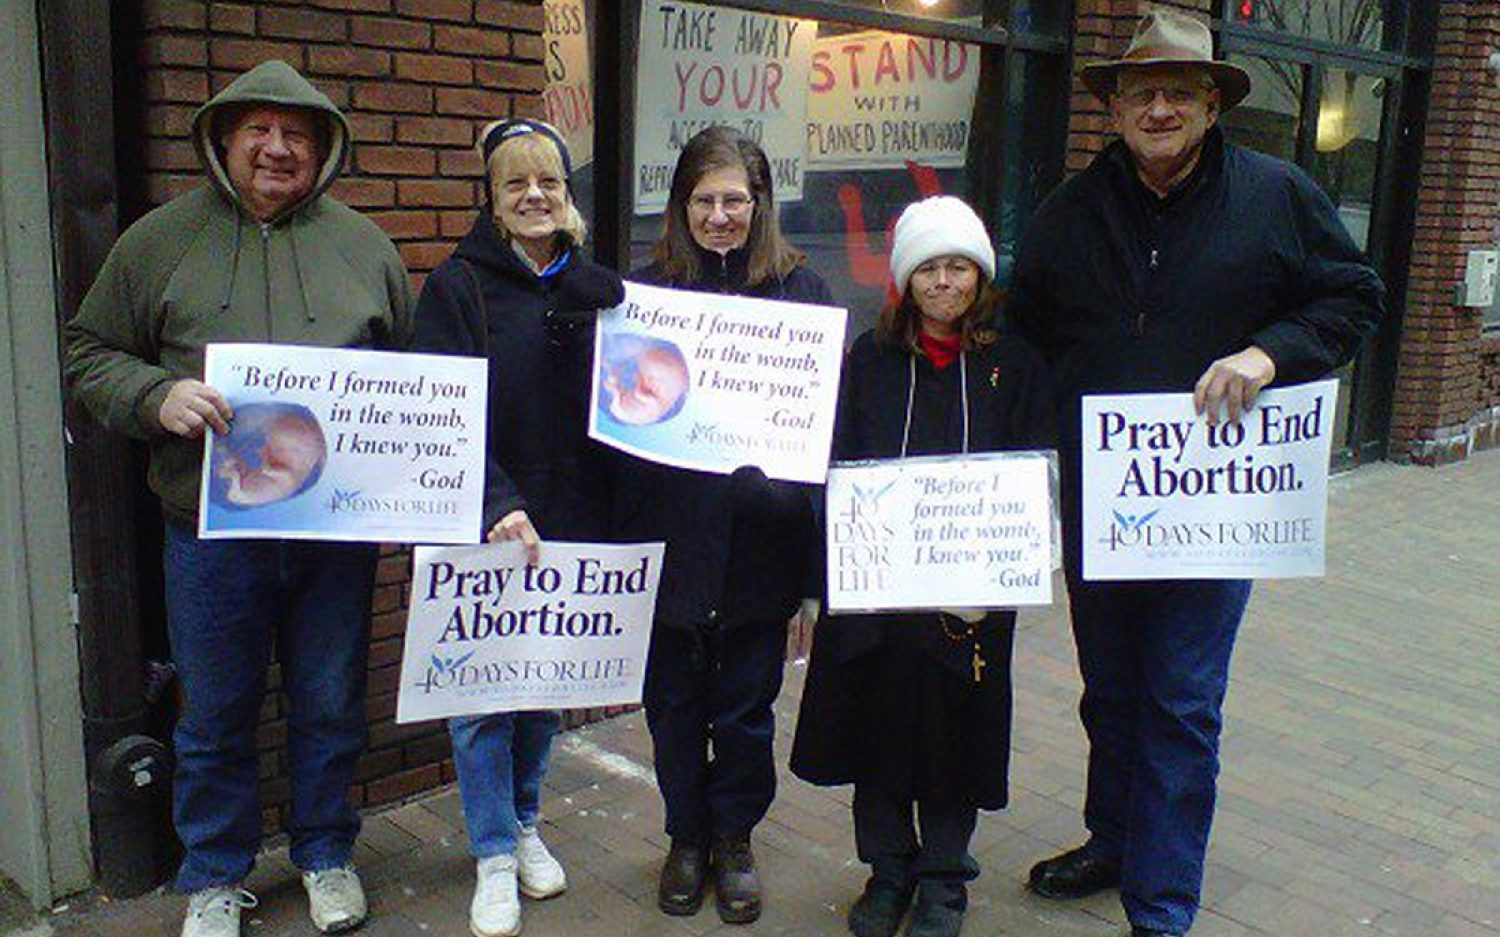 Inside voices outside abortion centers